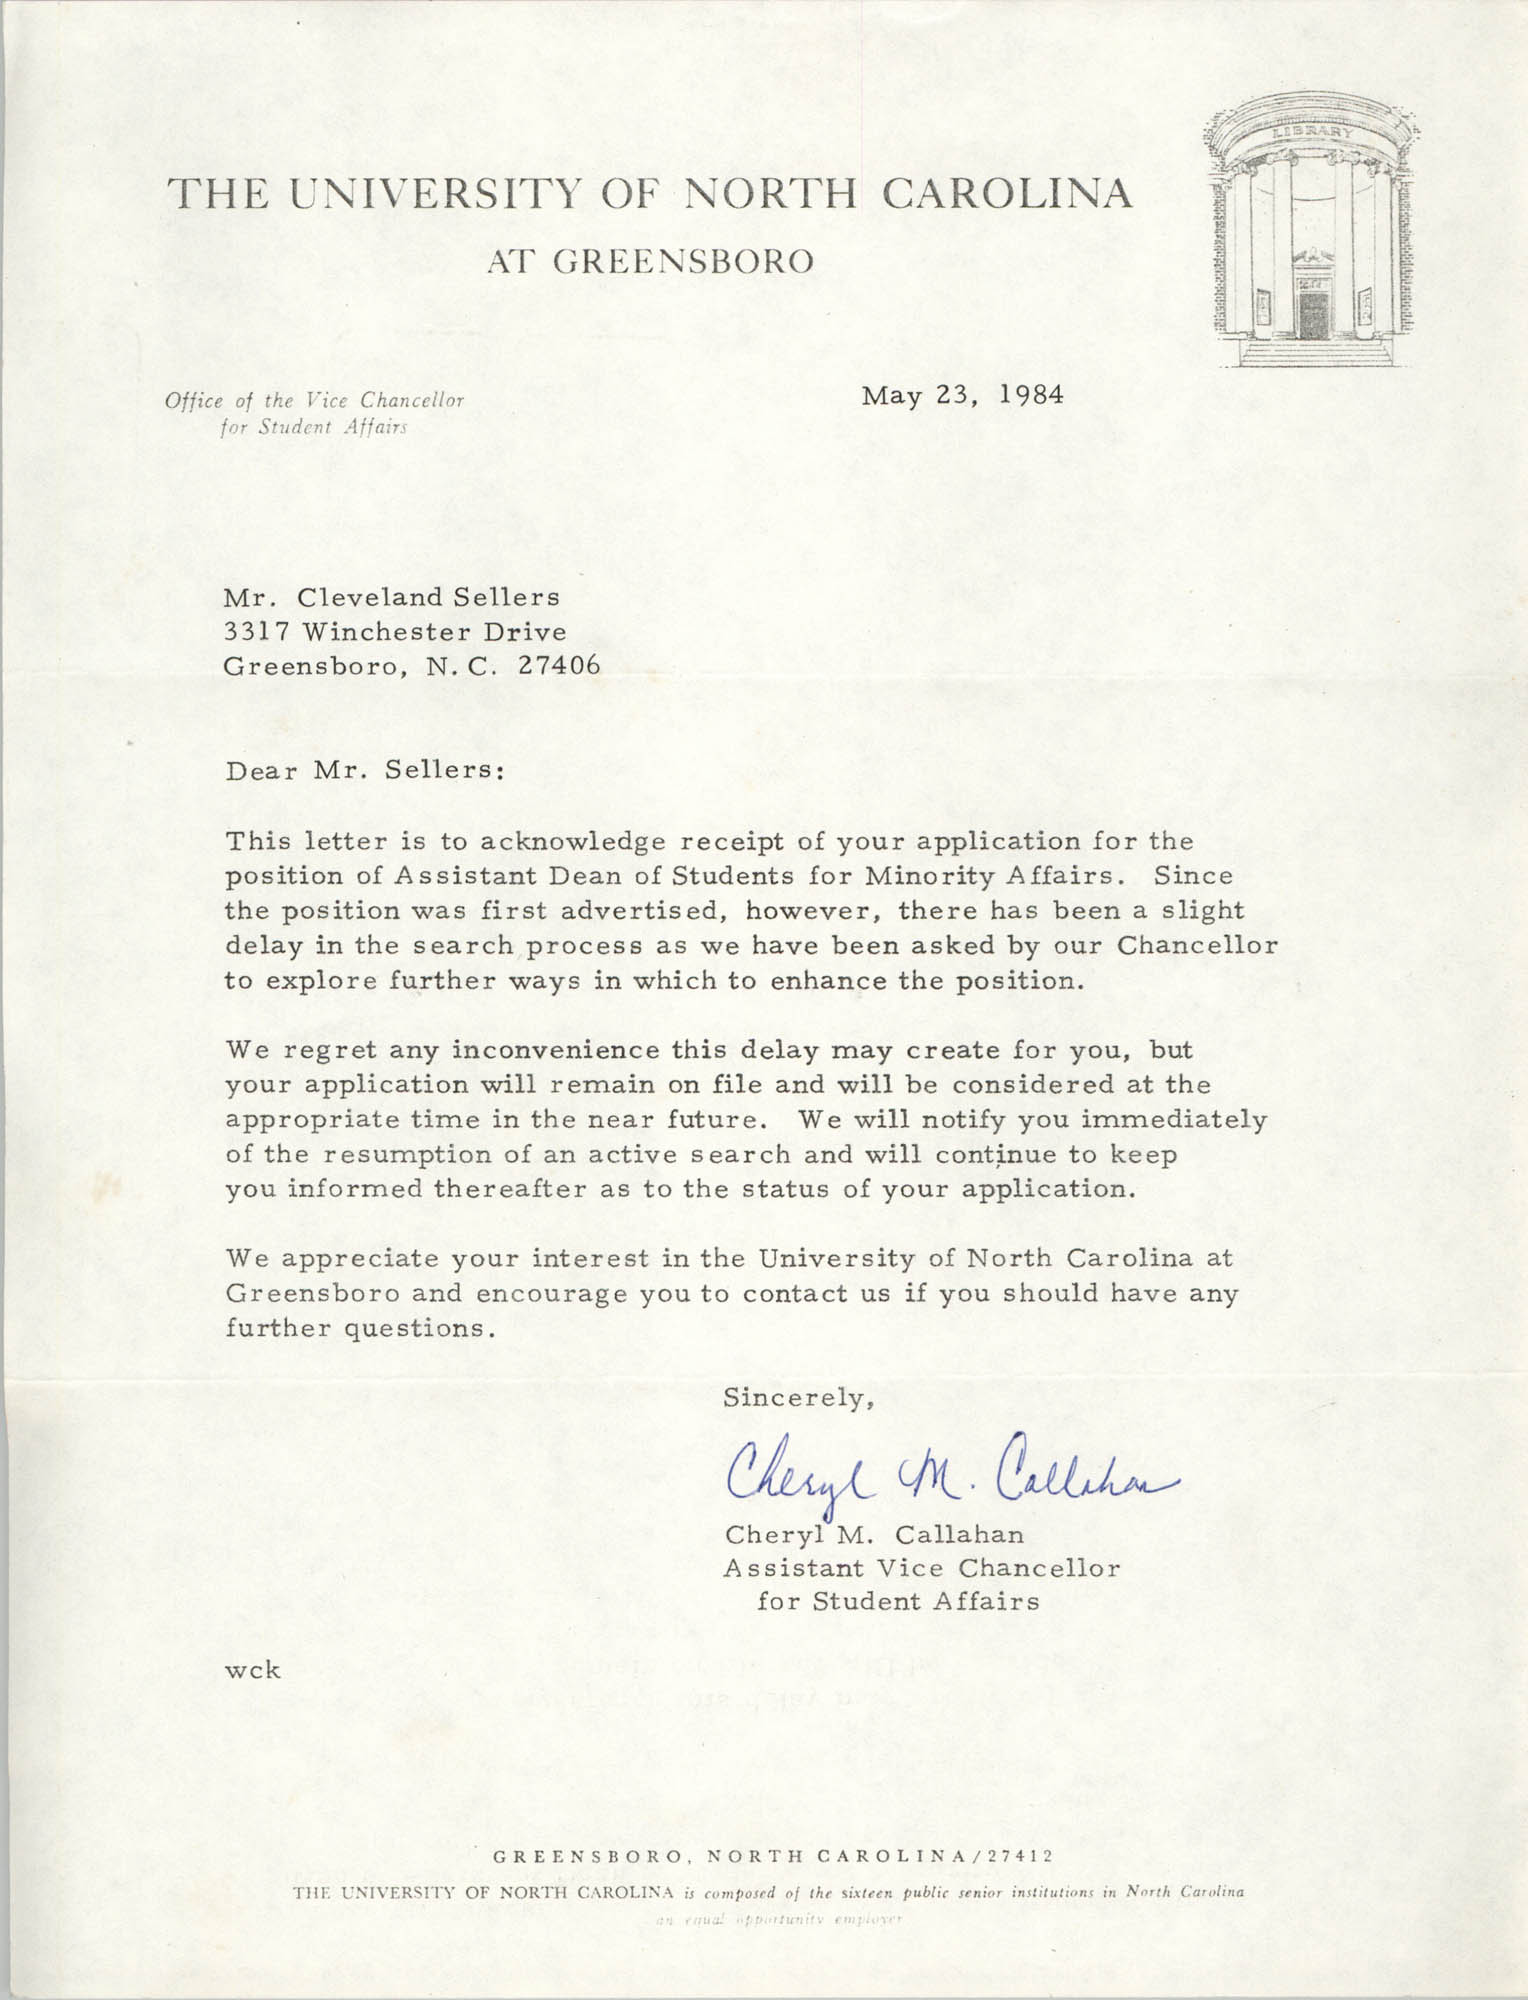 Letter from Cheryl M. Callahan to Cleveland Sellers, May 23, 1984